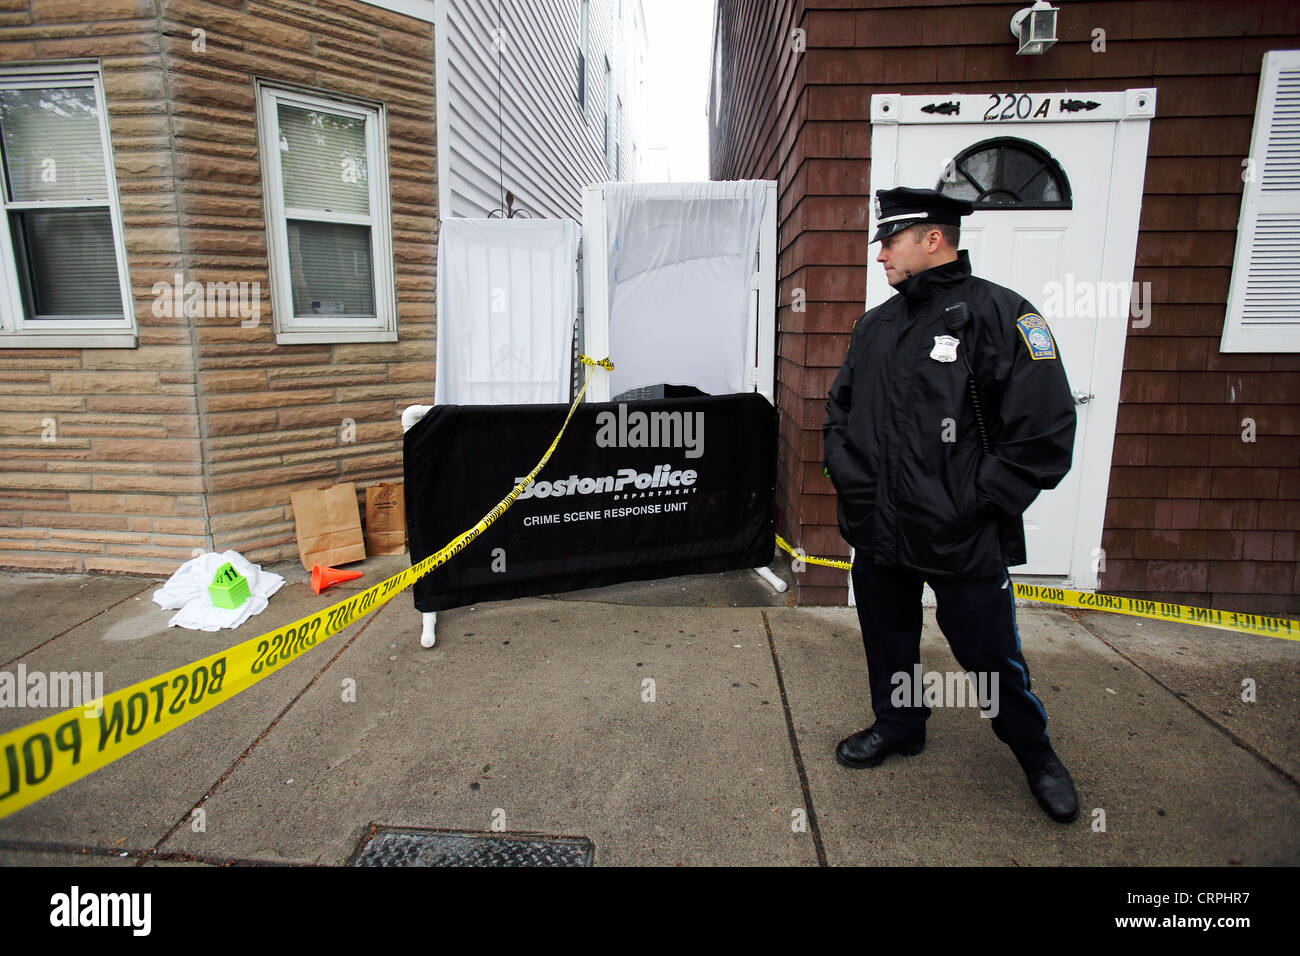 A police officer stands guard at a crime scene, Boston, Massachusetts - Stock Image